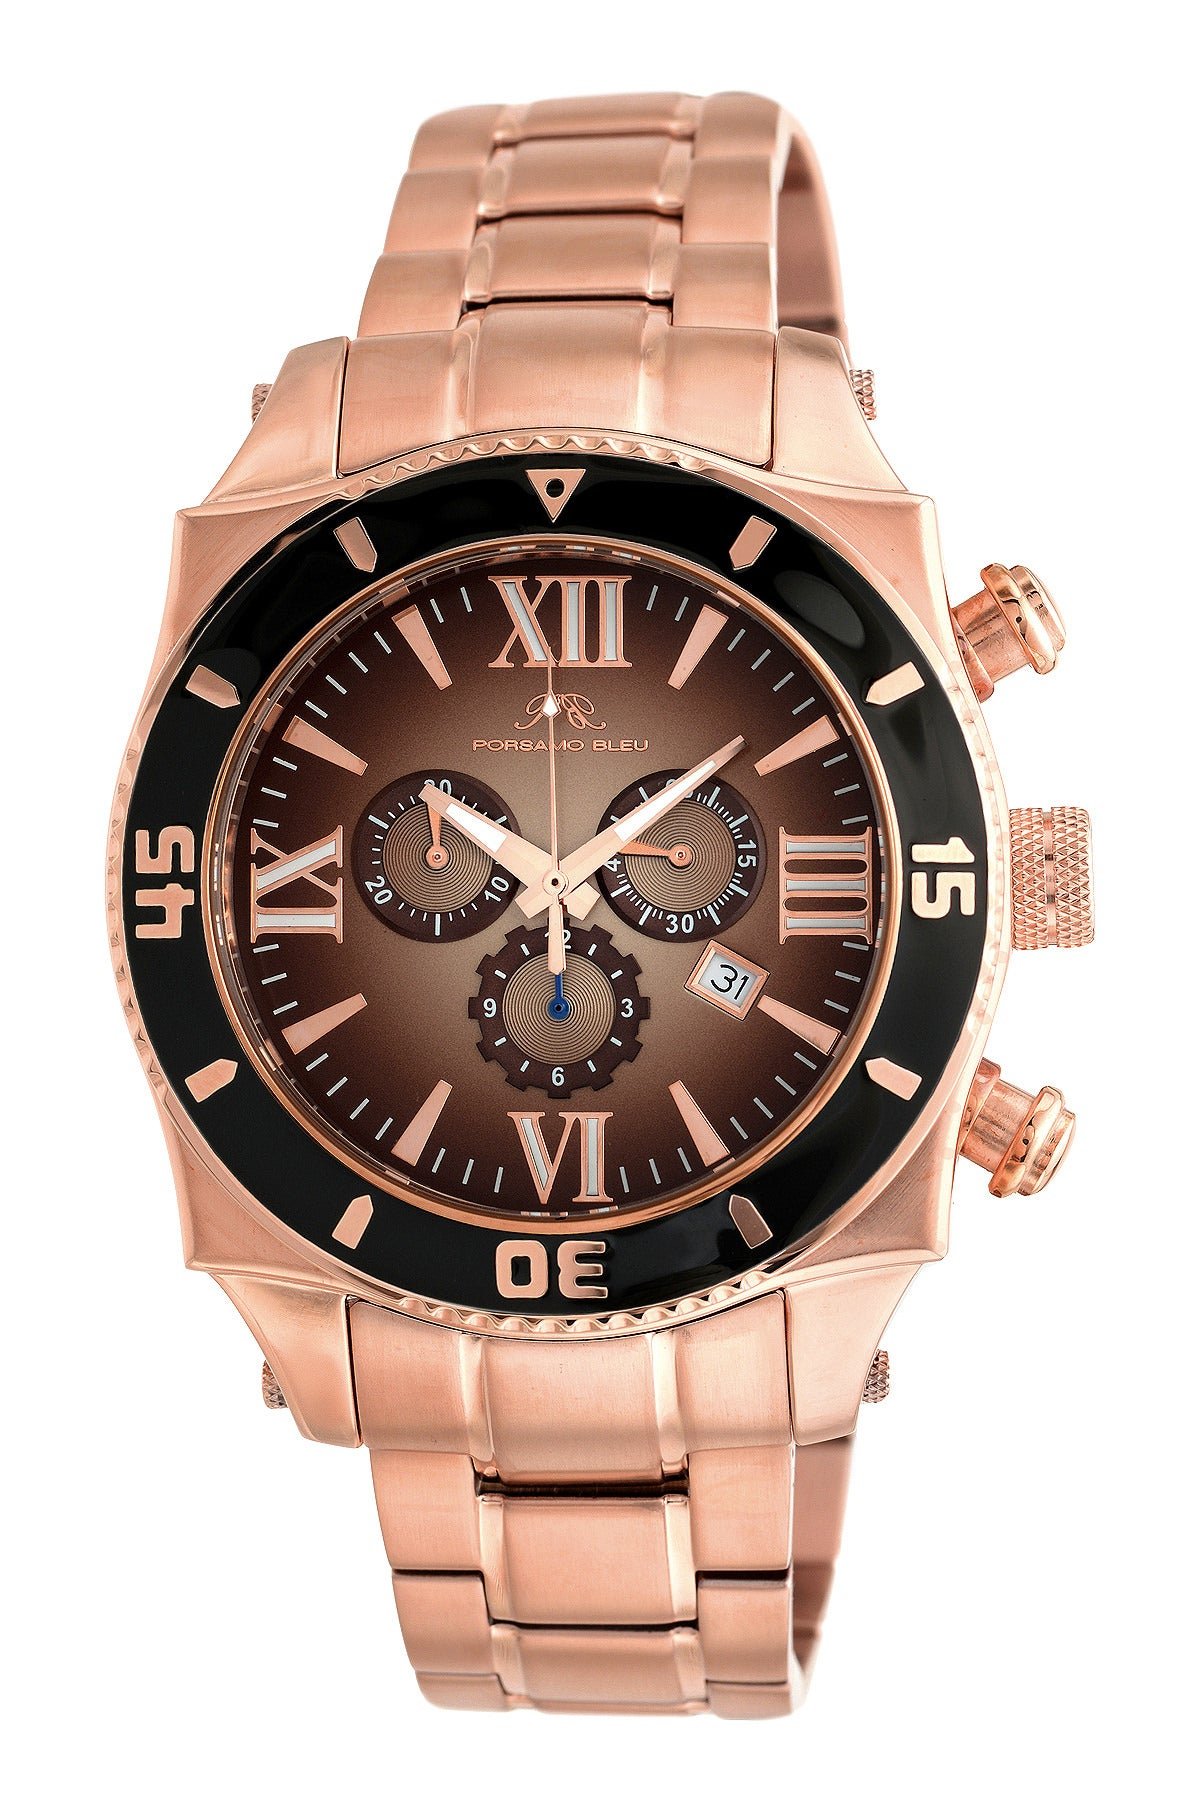 Porsamo Bleu Milan G luxury chronograph men's stainless steel watch, rose, black 071DMIS